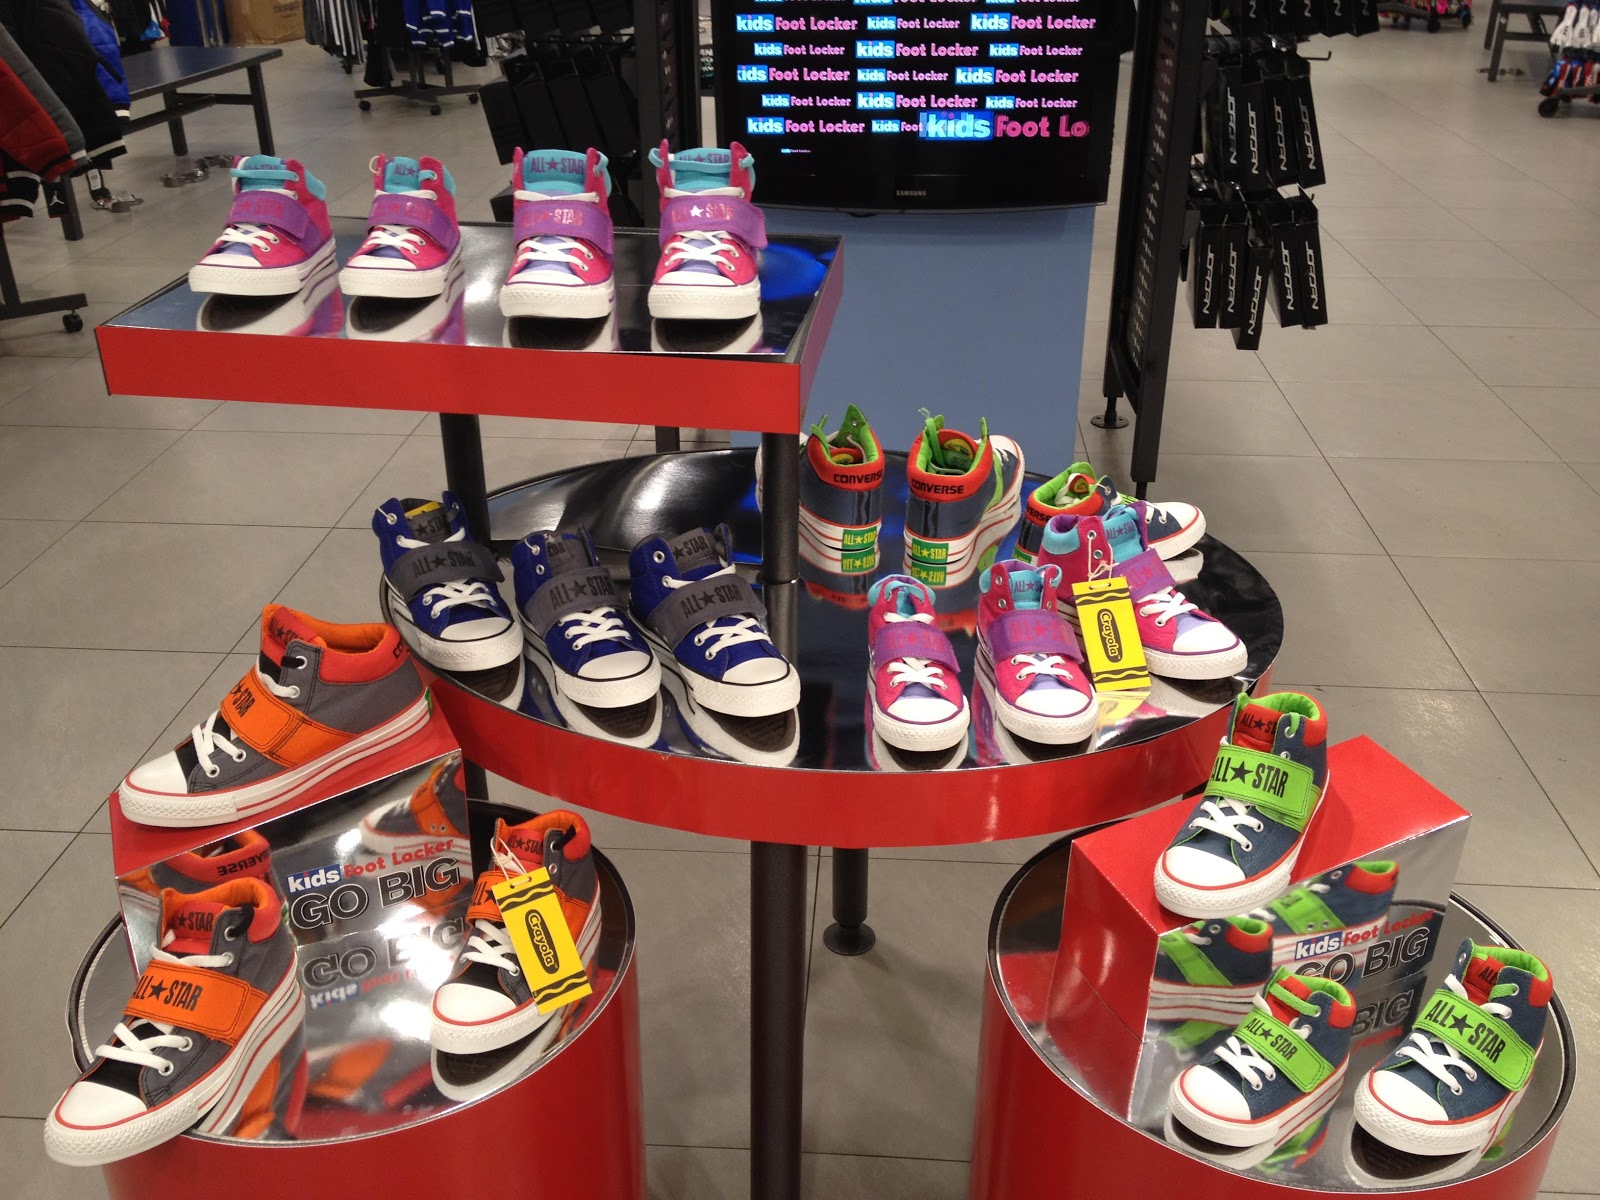 Kids Foot Locker PLAY IT OUT LOUD Sweepstakes $25 Giveaway TWO